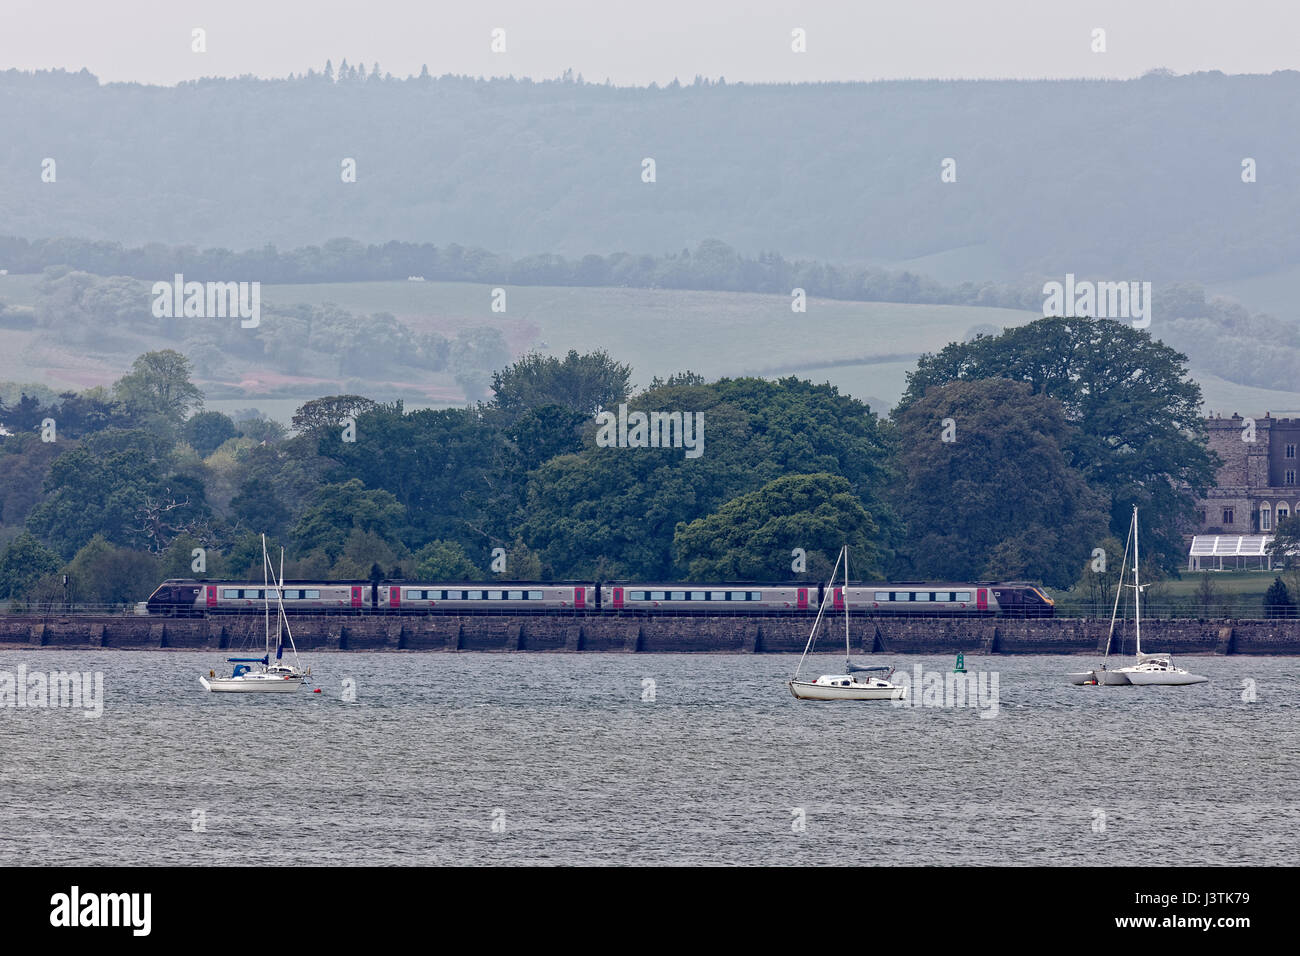 Cross Country intercity train on the Riviera Line moving left to right adjacent to River Exe close to Powderham - Stock Image